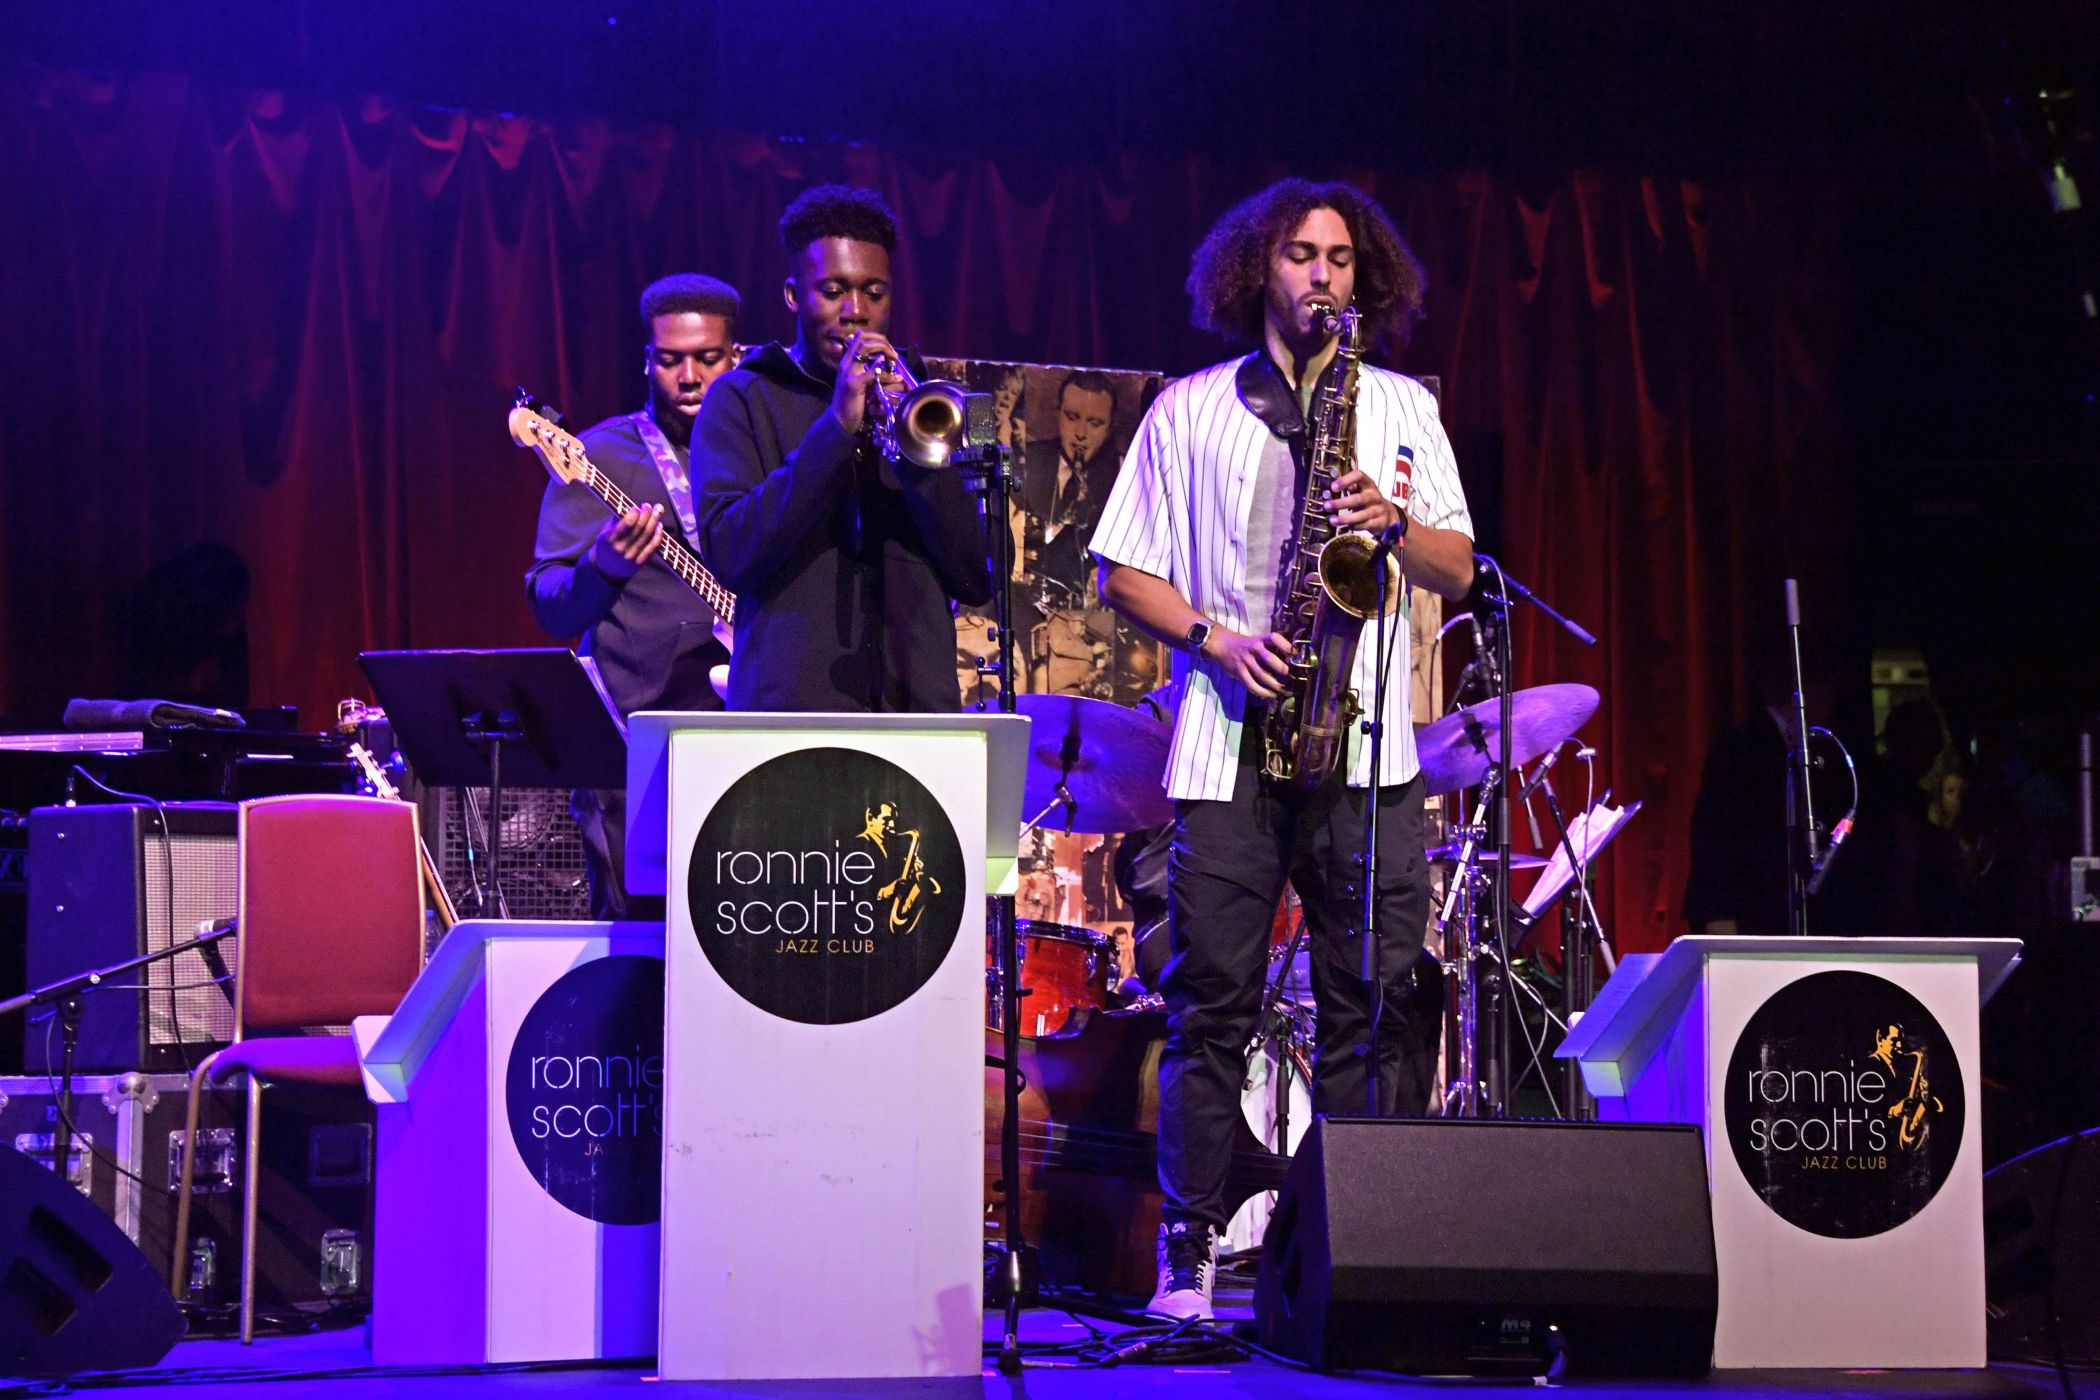 Ronnie Scott's blows the roof off the Royal Albert Hall in 60th birthday celebrations!